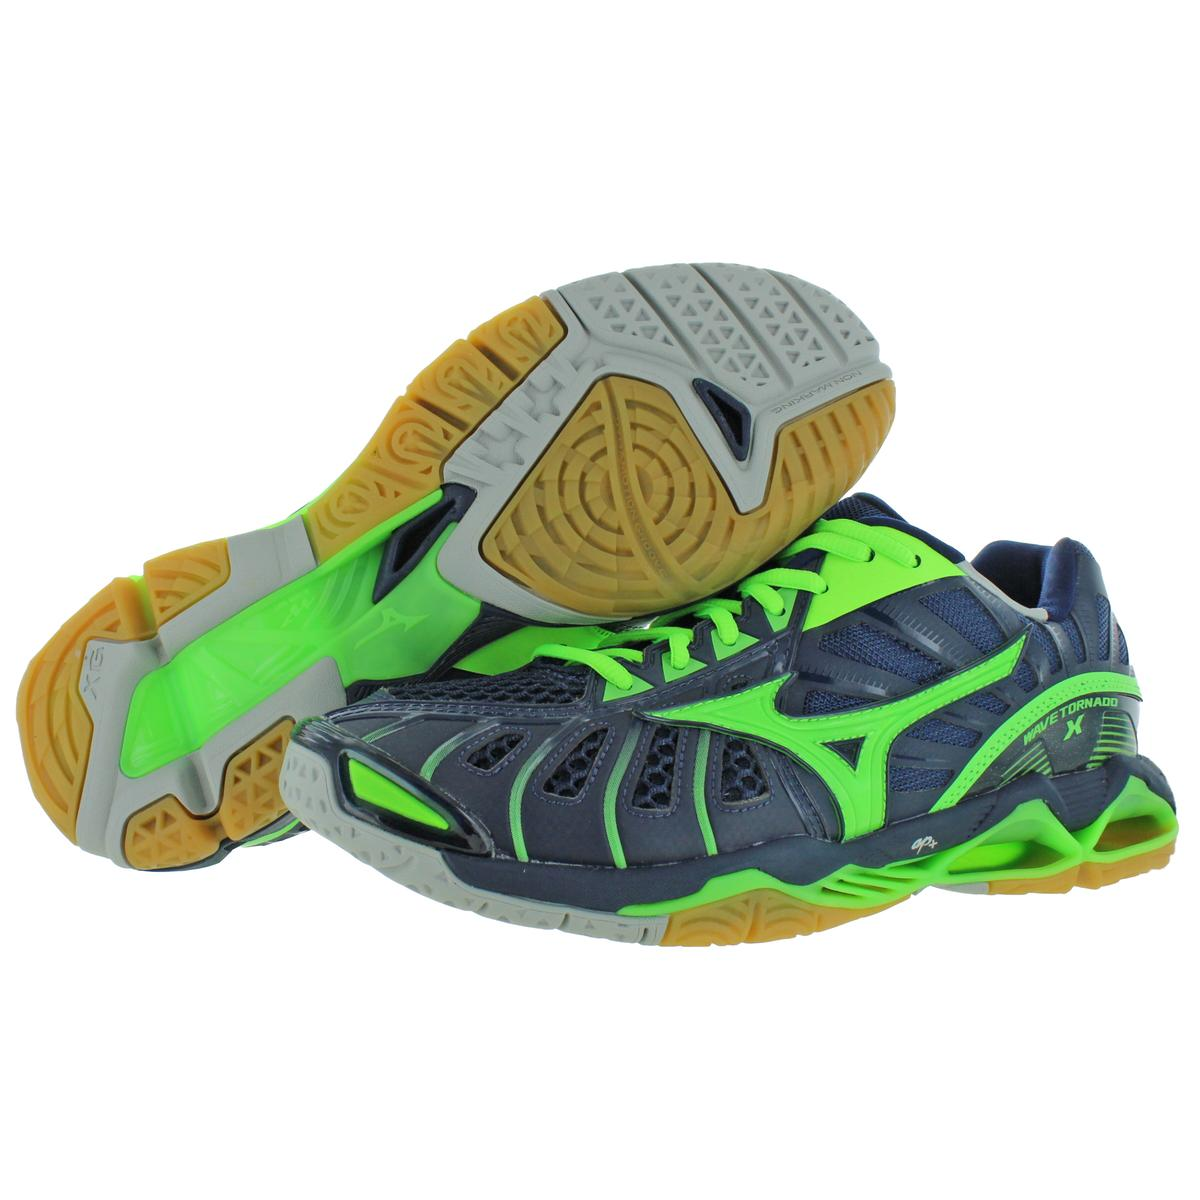 MIZUNO homme wave Tornado x Lacets Low-Top Volley-ball Baskets Chaussures BHFO 0335